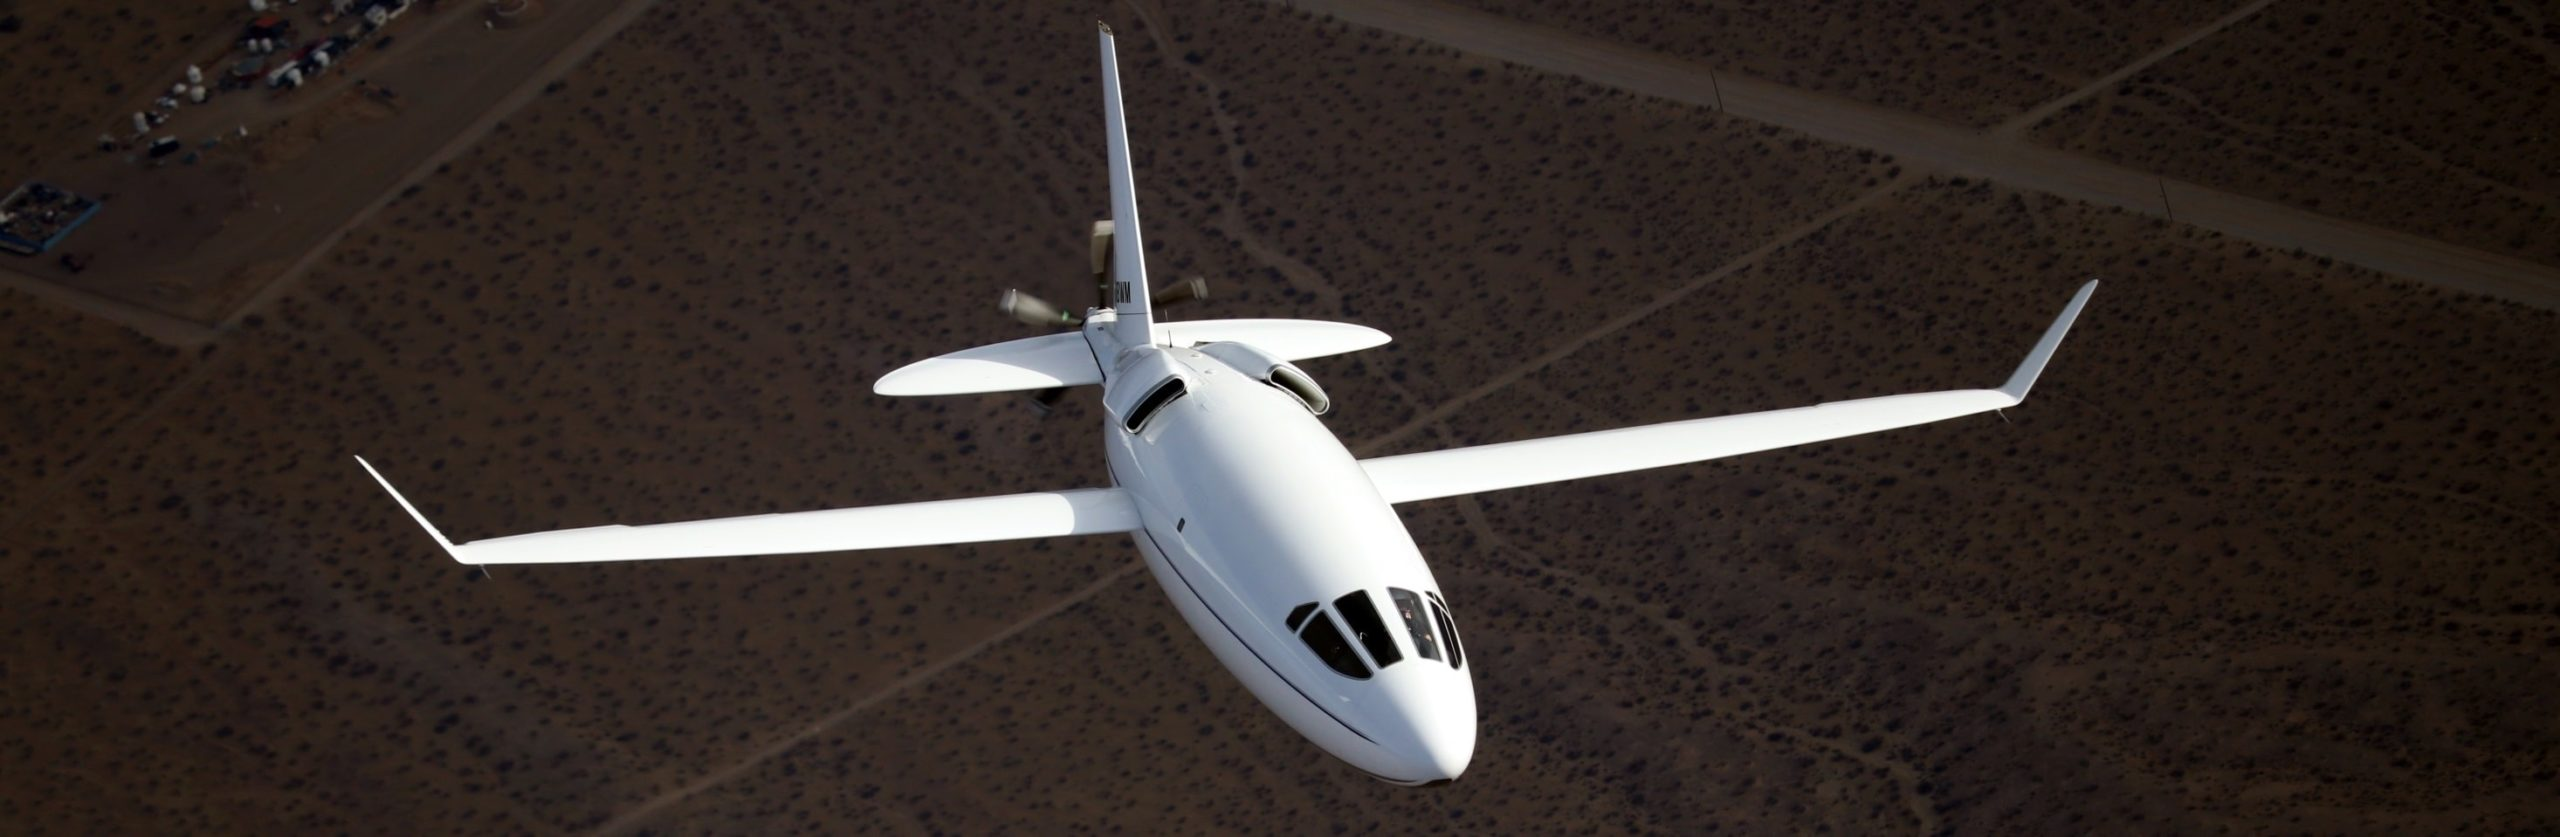 The CELERA 500L flying over desert